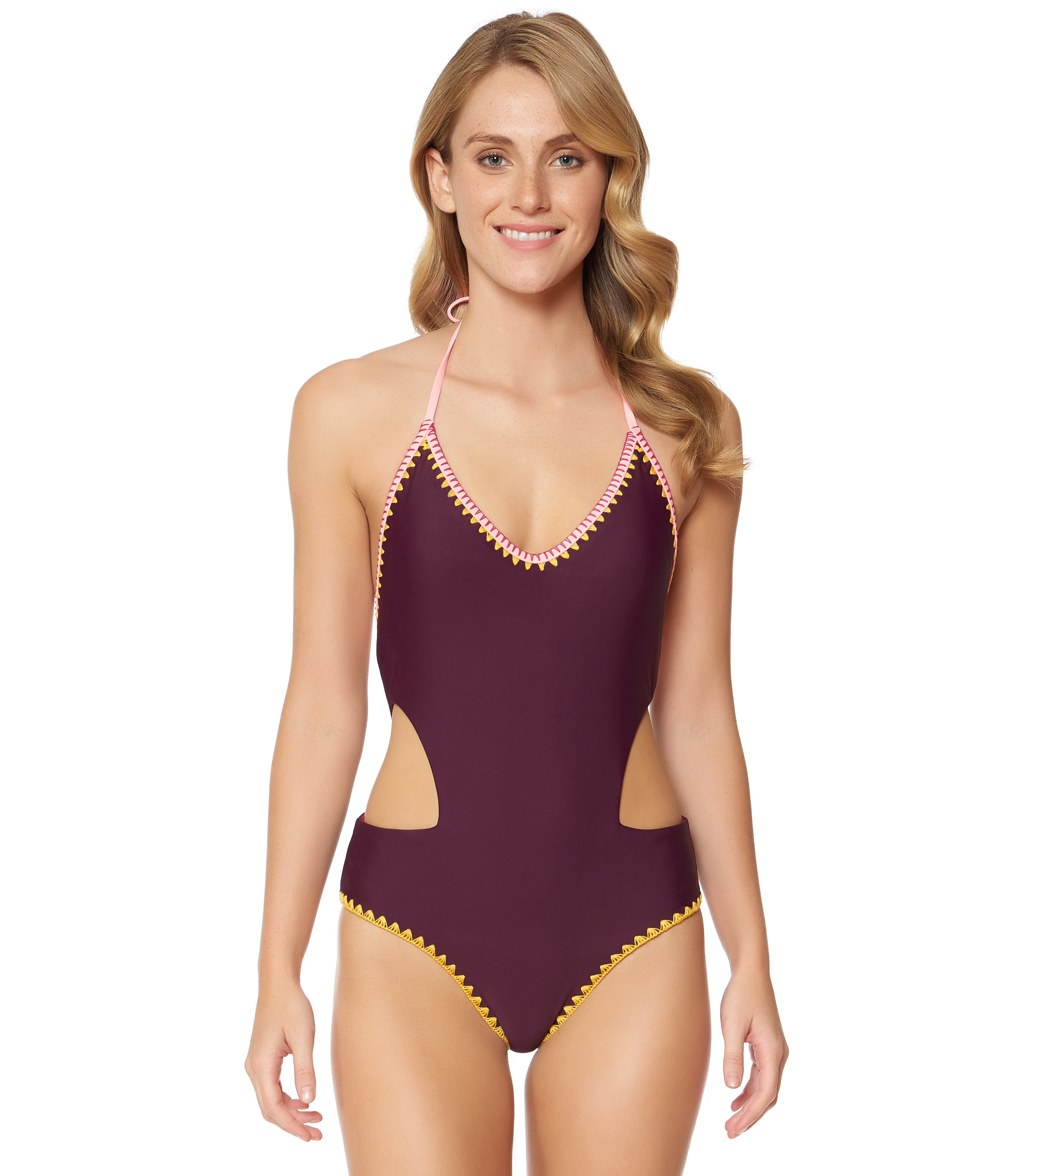 Simpson Jessica Swimwear and Perfume images